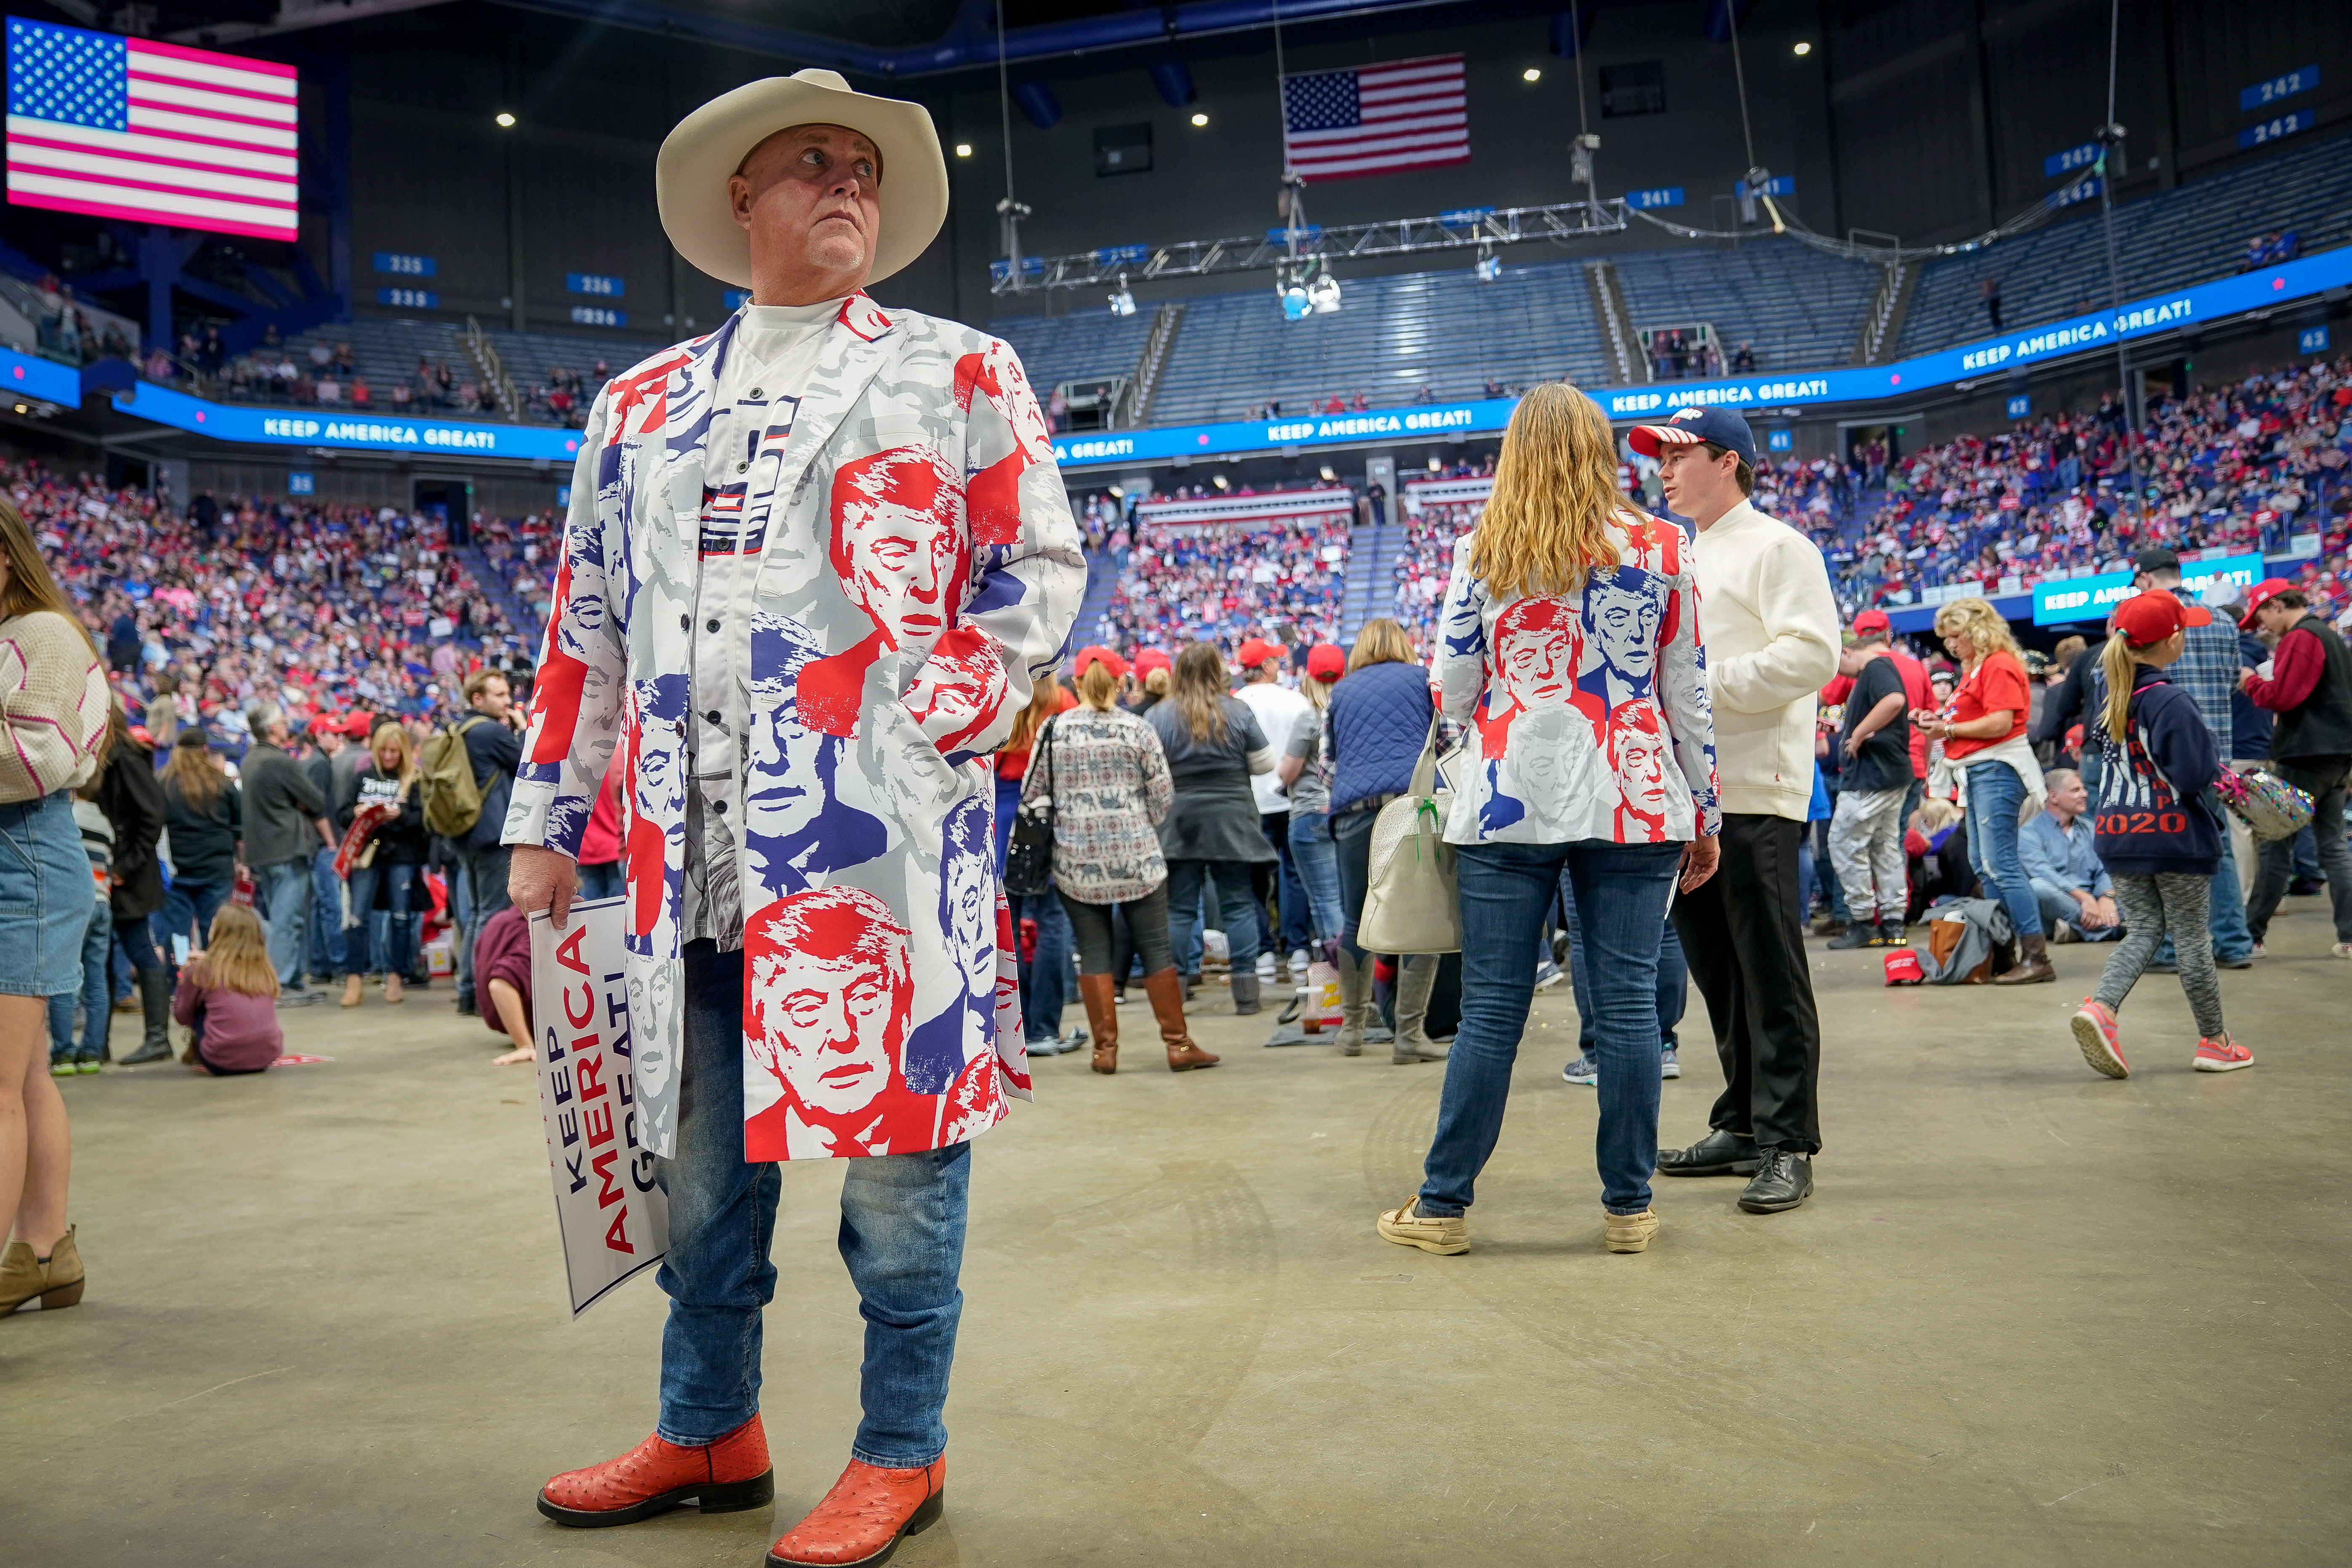 A man wearing a coat made of fabric imprinted with Donald Trump's face stands in an arena before a Donald Trump rally.